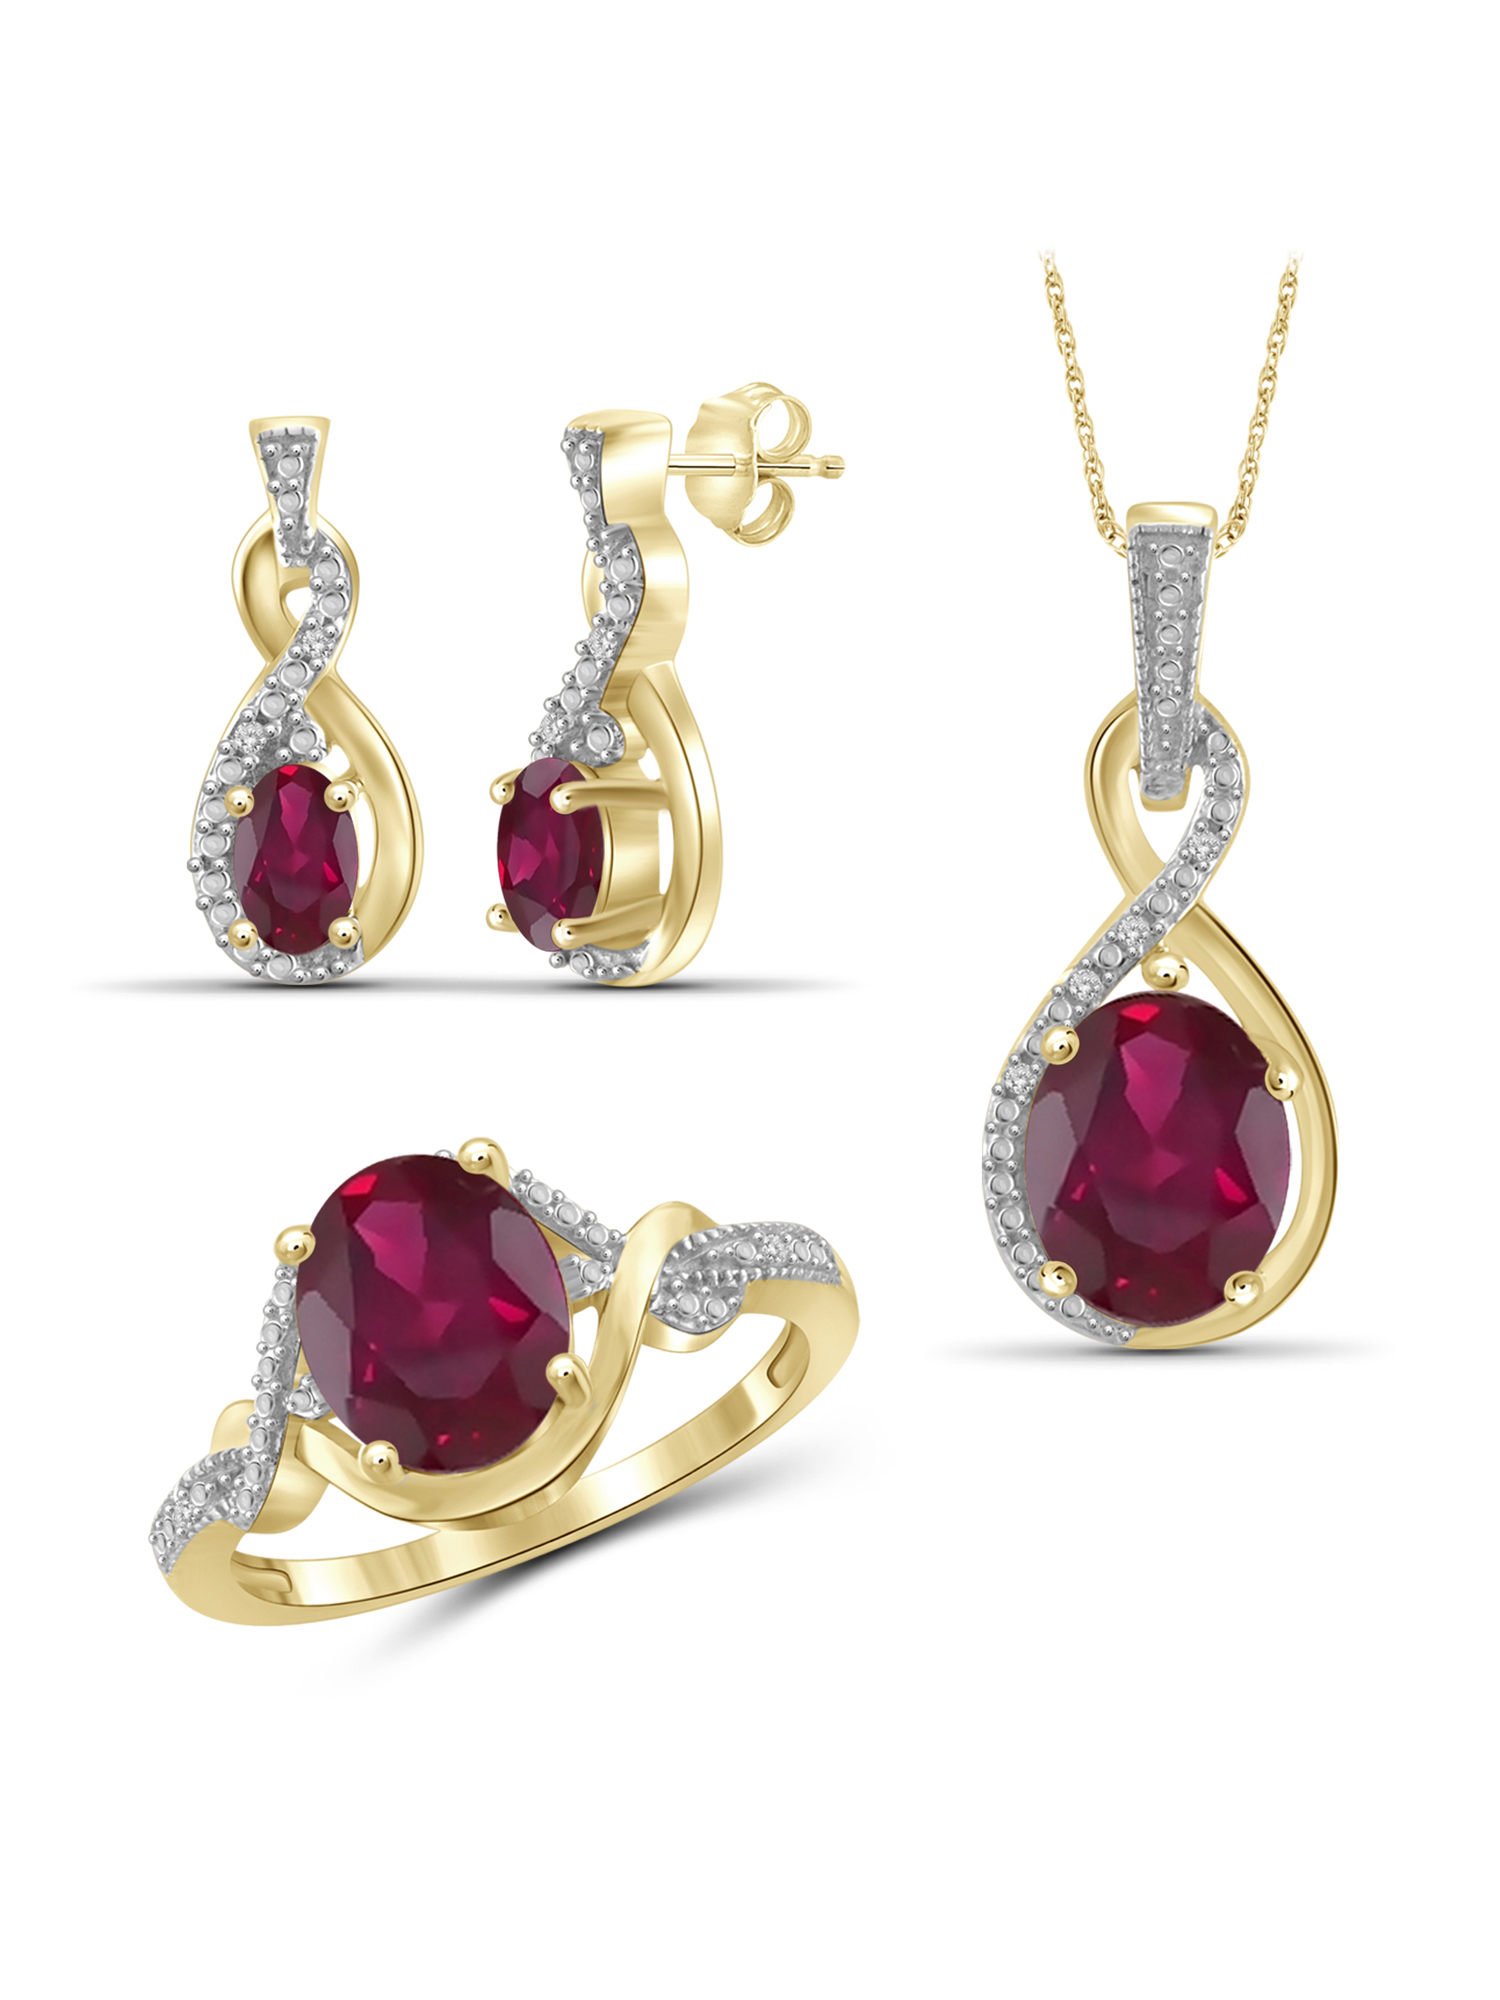 JewelersClub 5 1 2 Carat T.G.W. Ruby And White Diamond Accent 14K Gold over Silver 3-Piece Jewelry set by JewelersClub